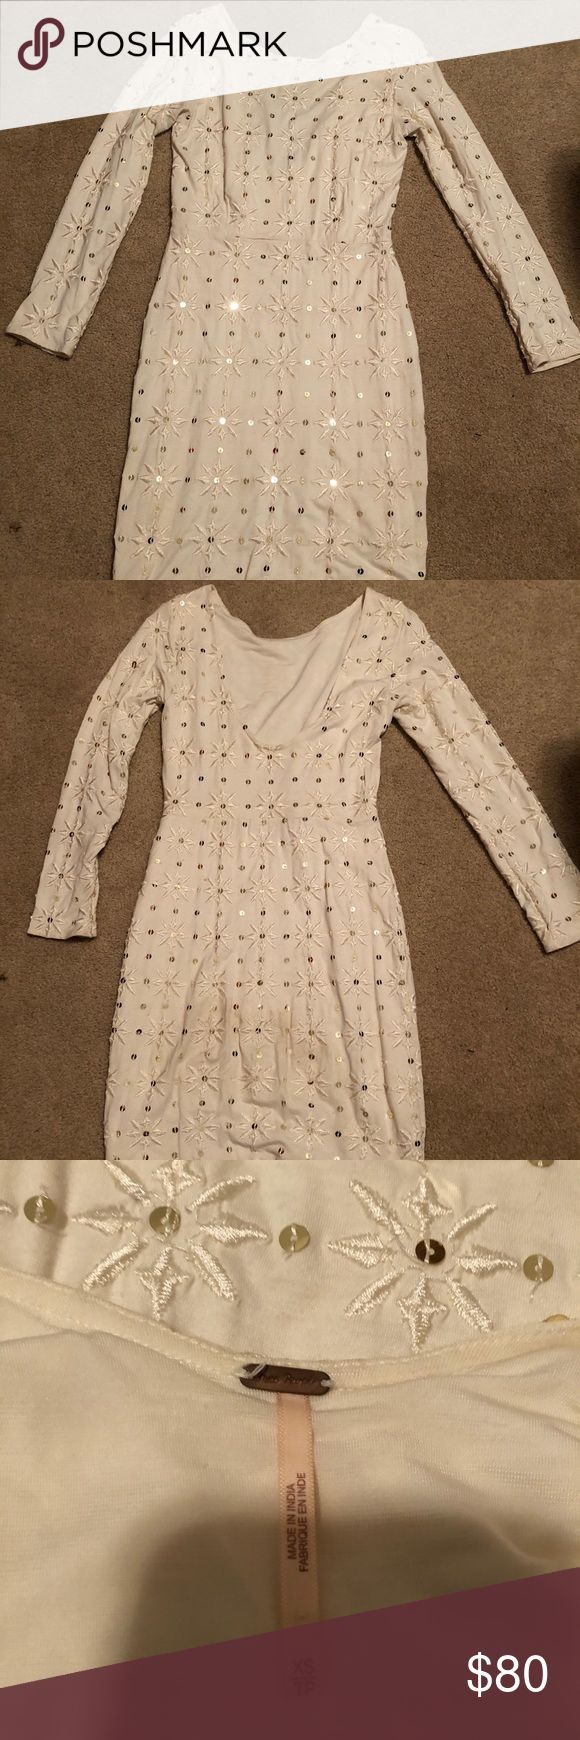 Free People Sparkle Dress White snowflake like sparkle design. Perfect for winter occasions like New Years Eve or Christmas parties. Hugs body with low cut back. Falls couple inches above knee on 5' female. Free People Dresses Long Sleeve